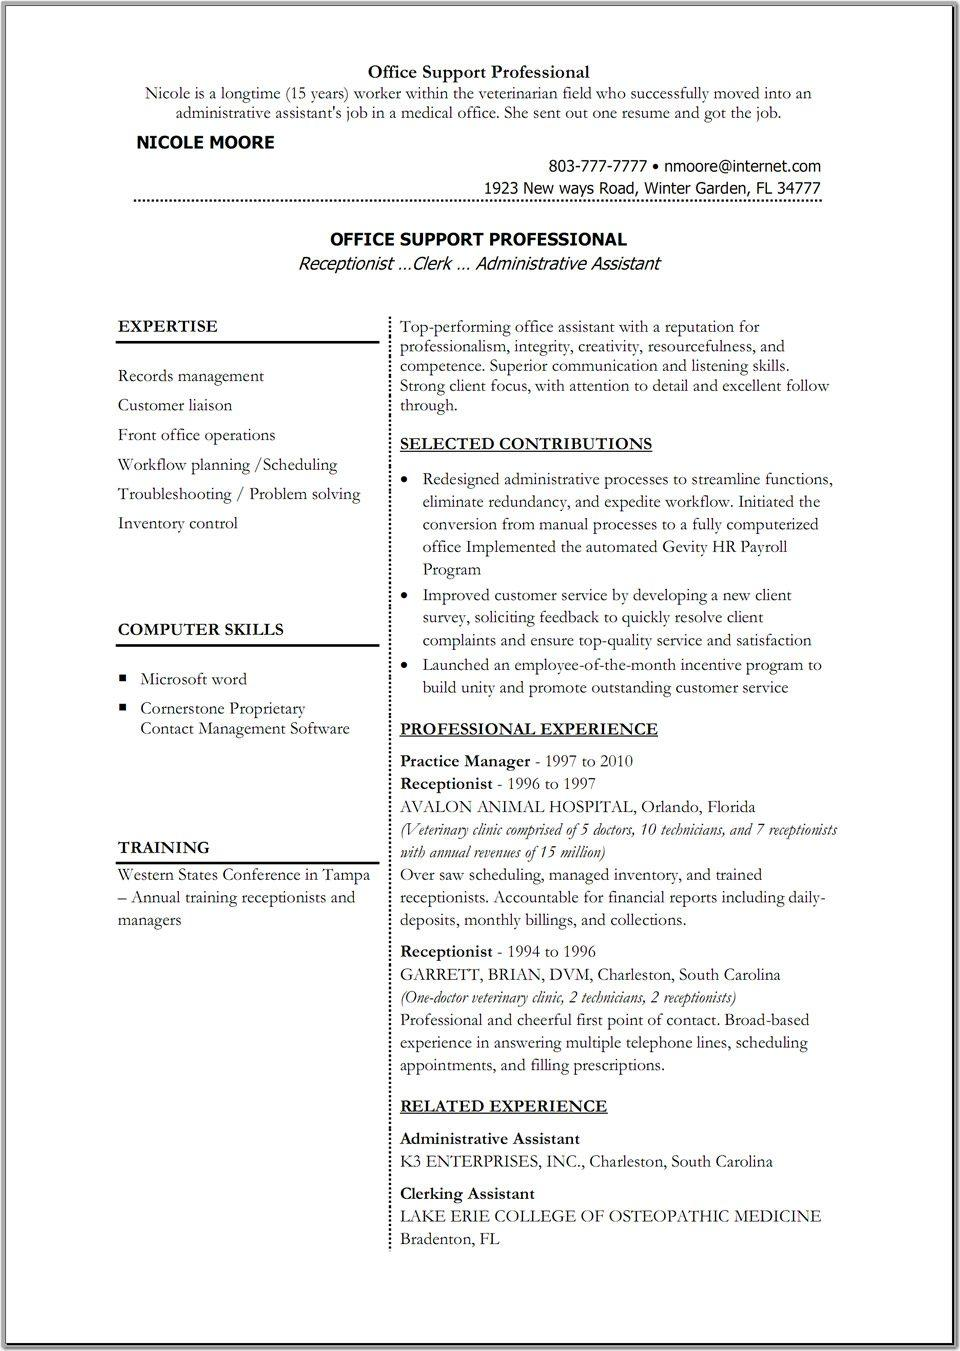 Cv Template Word 2007 Free Download